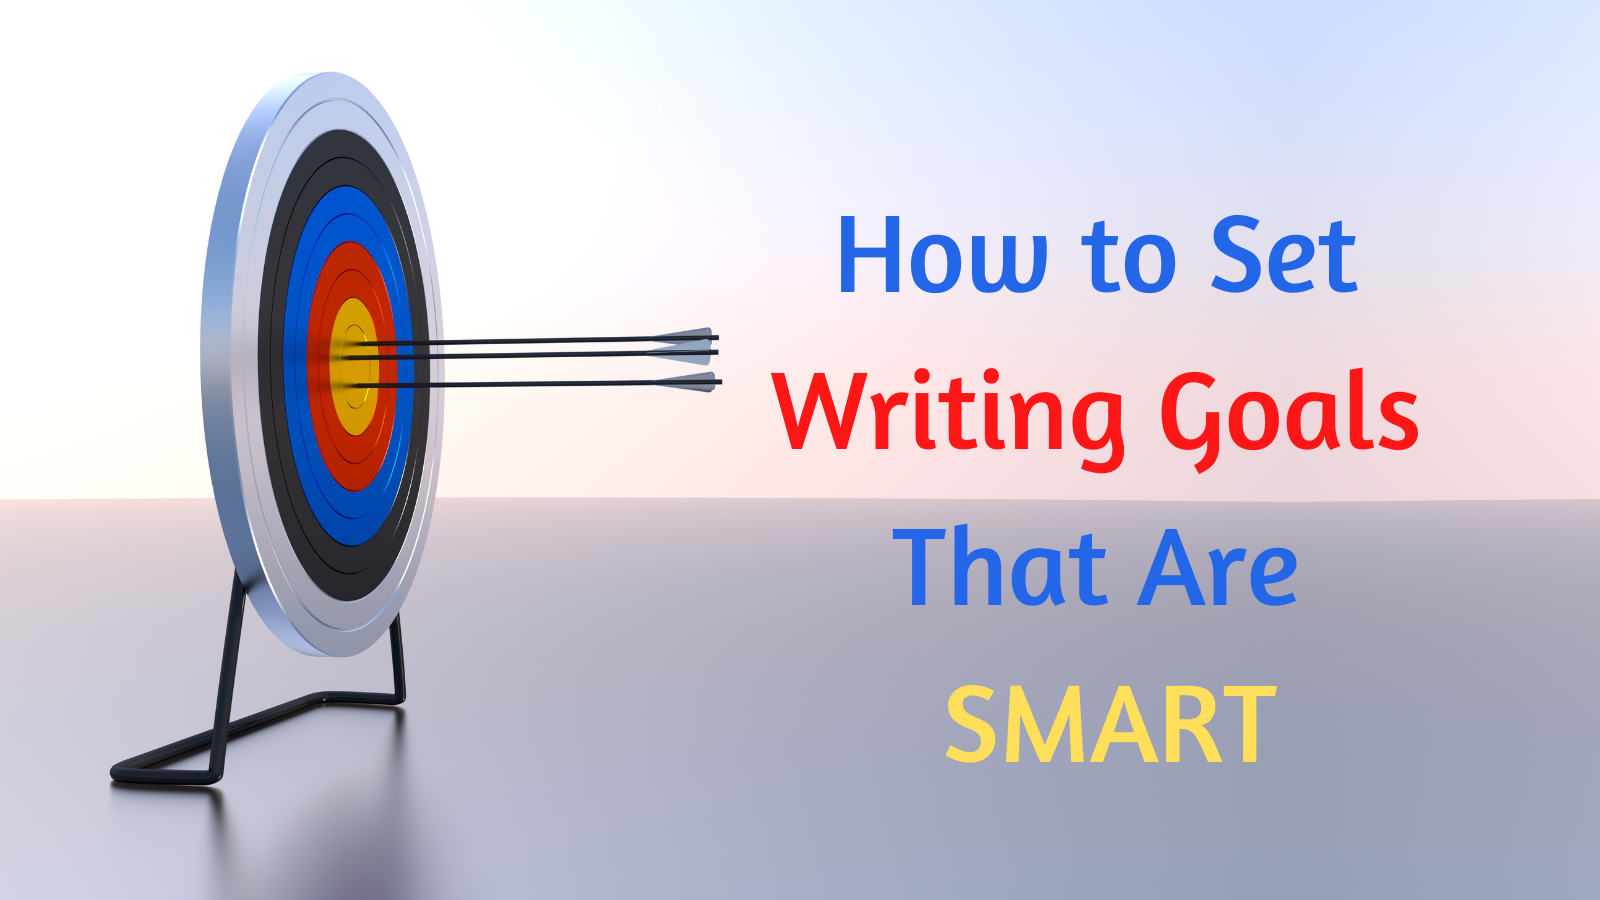 How to Set Writing Goals That Are SMART